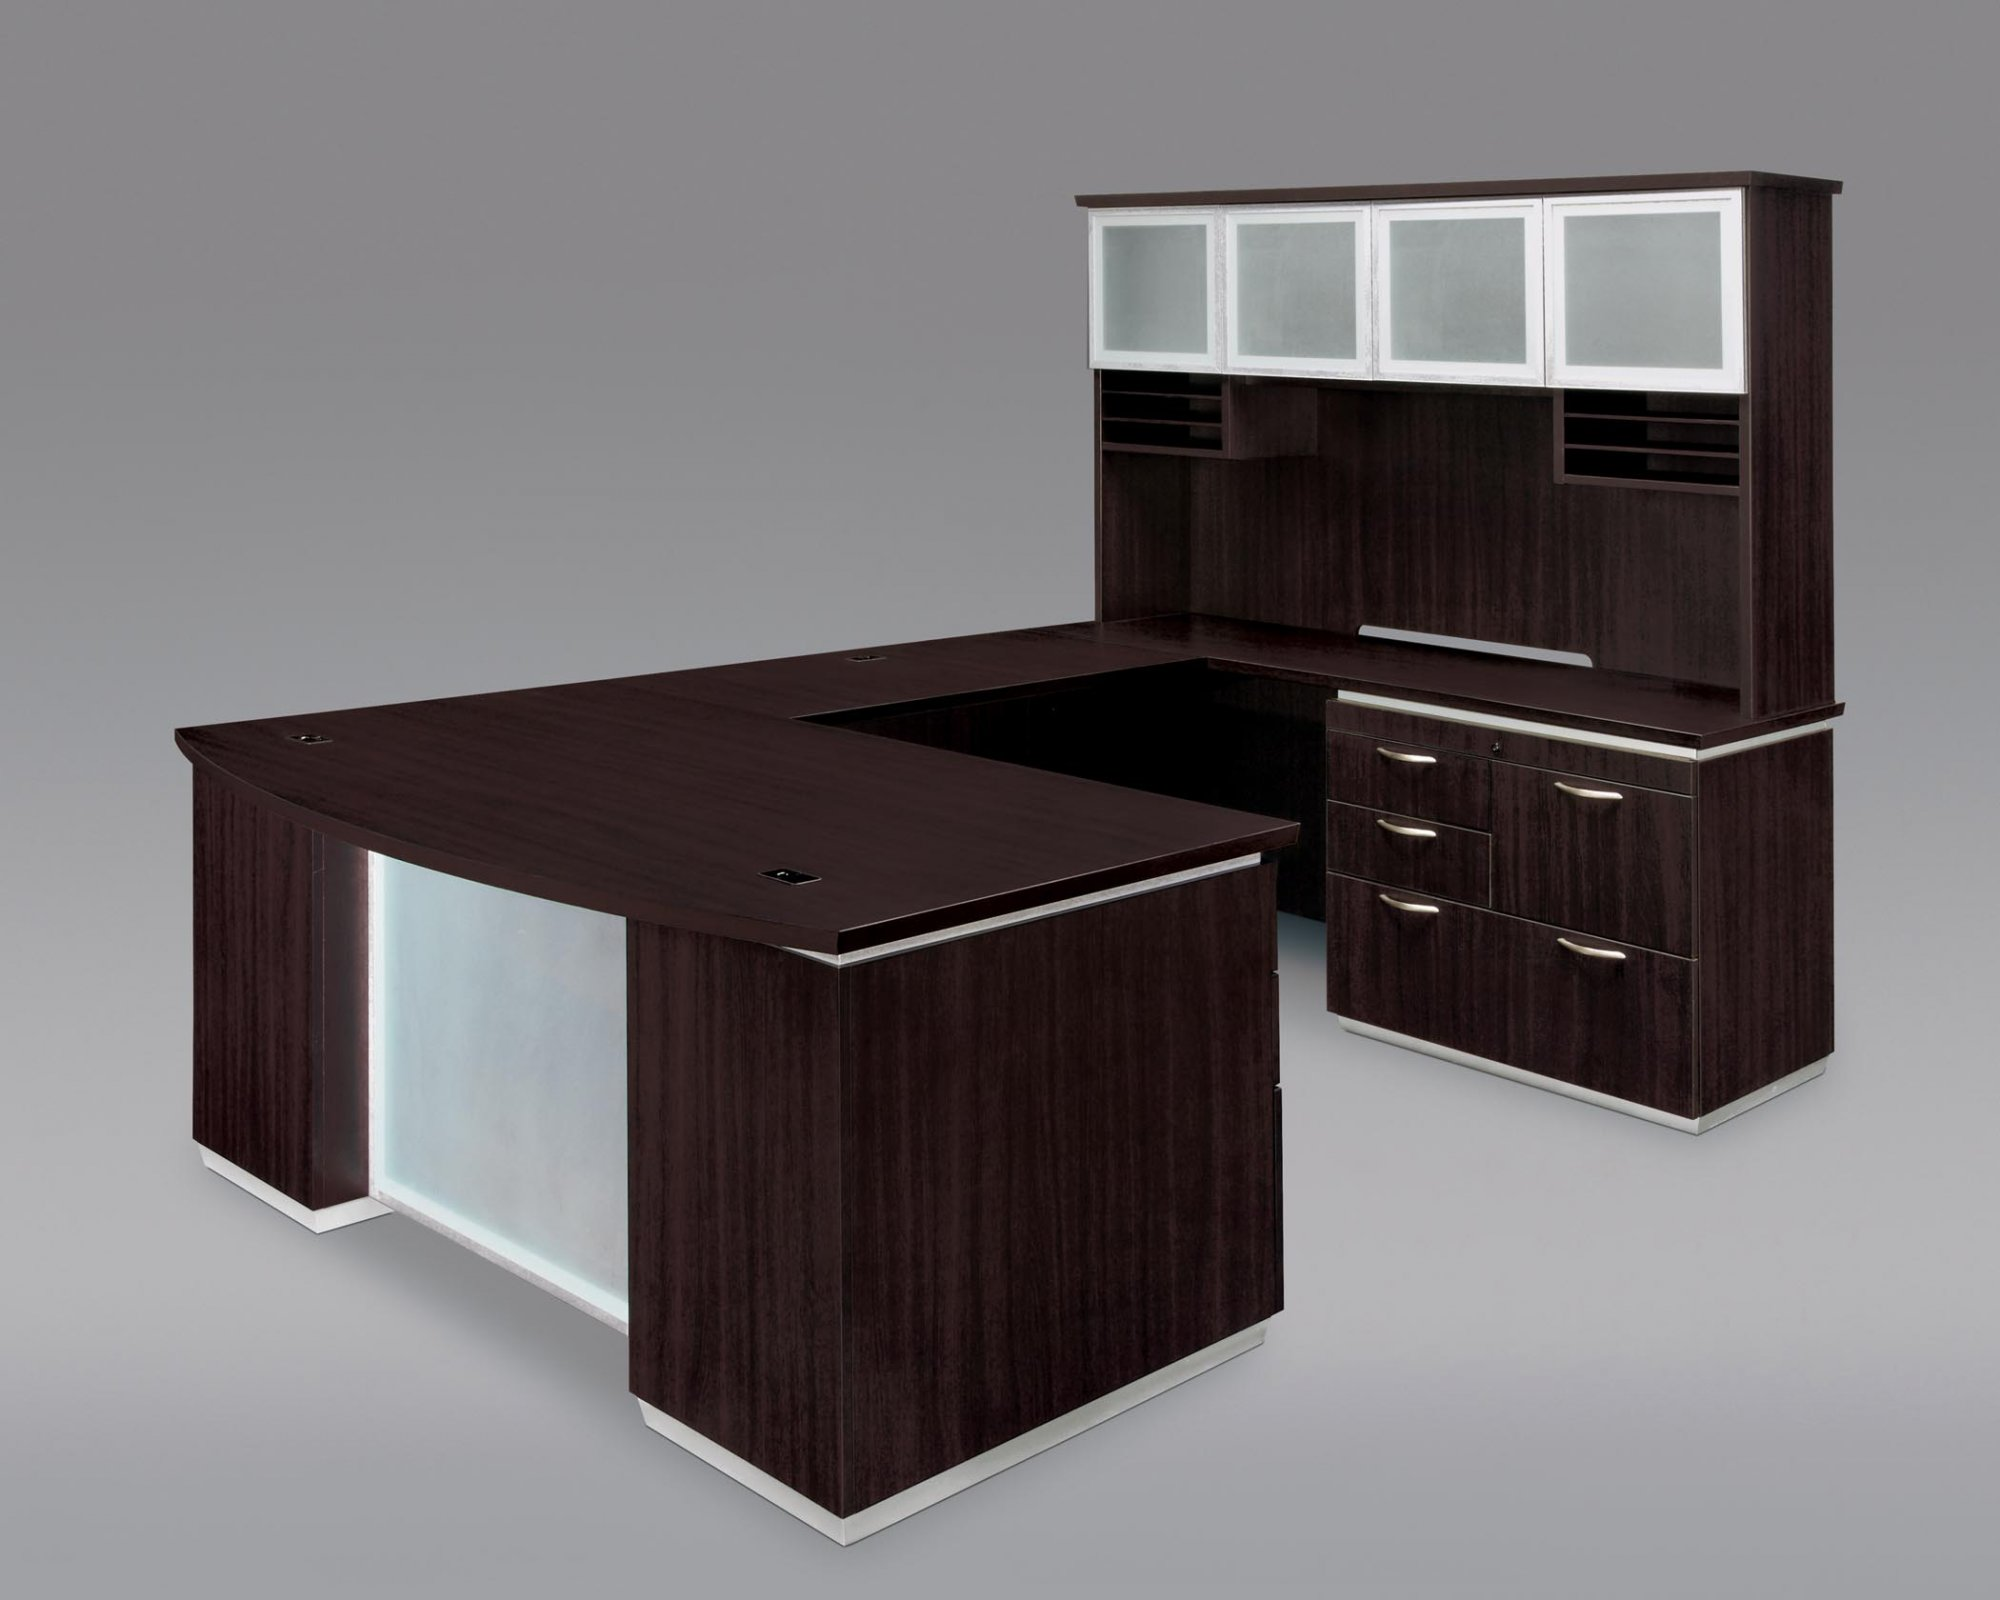 Pimlico  Right Personal File Bow Front U Desk with Frosted Glass Modesty Panel